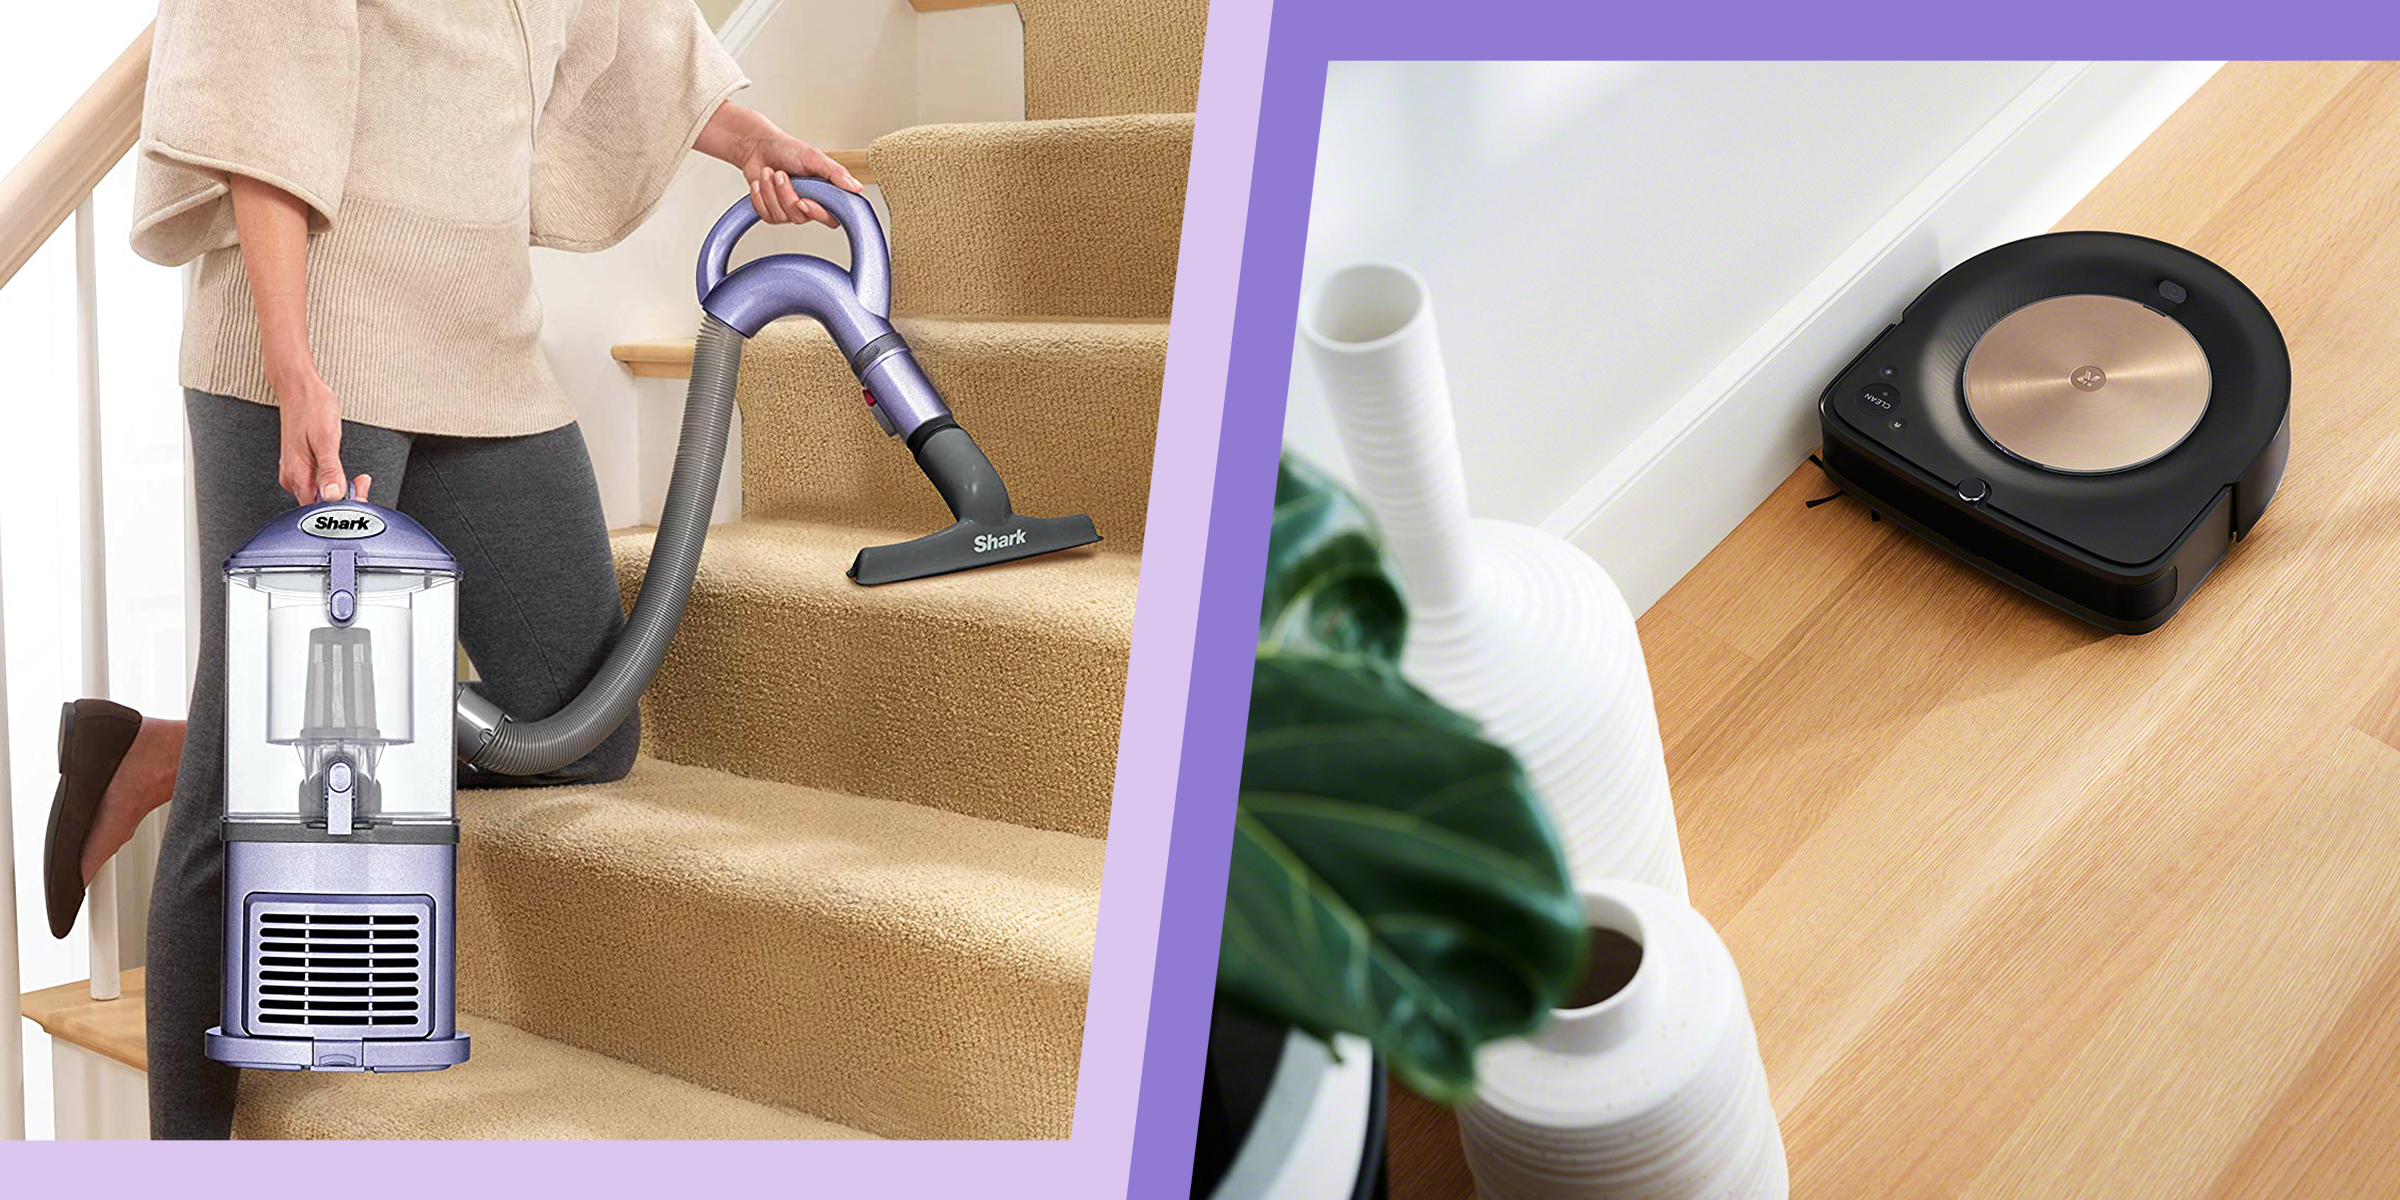 11 Best Vacuums In 2020 According To